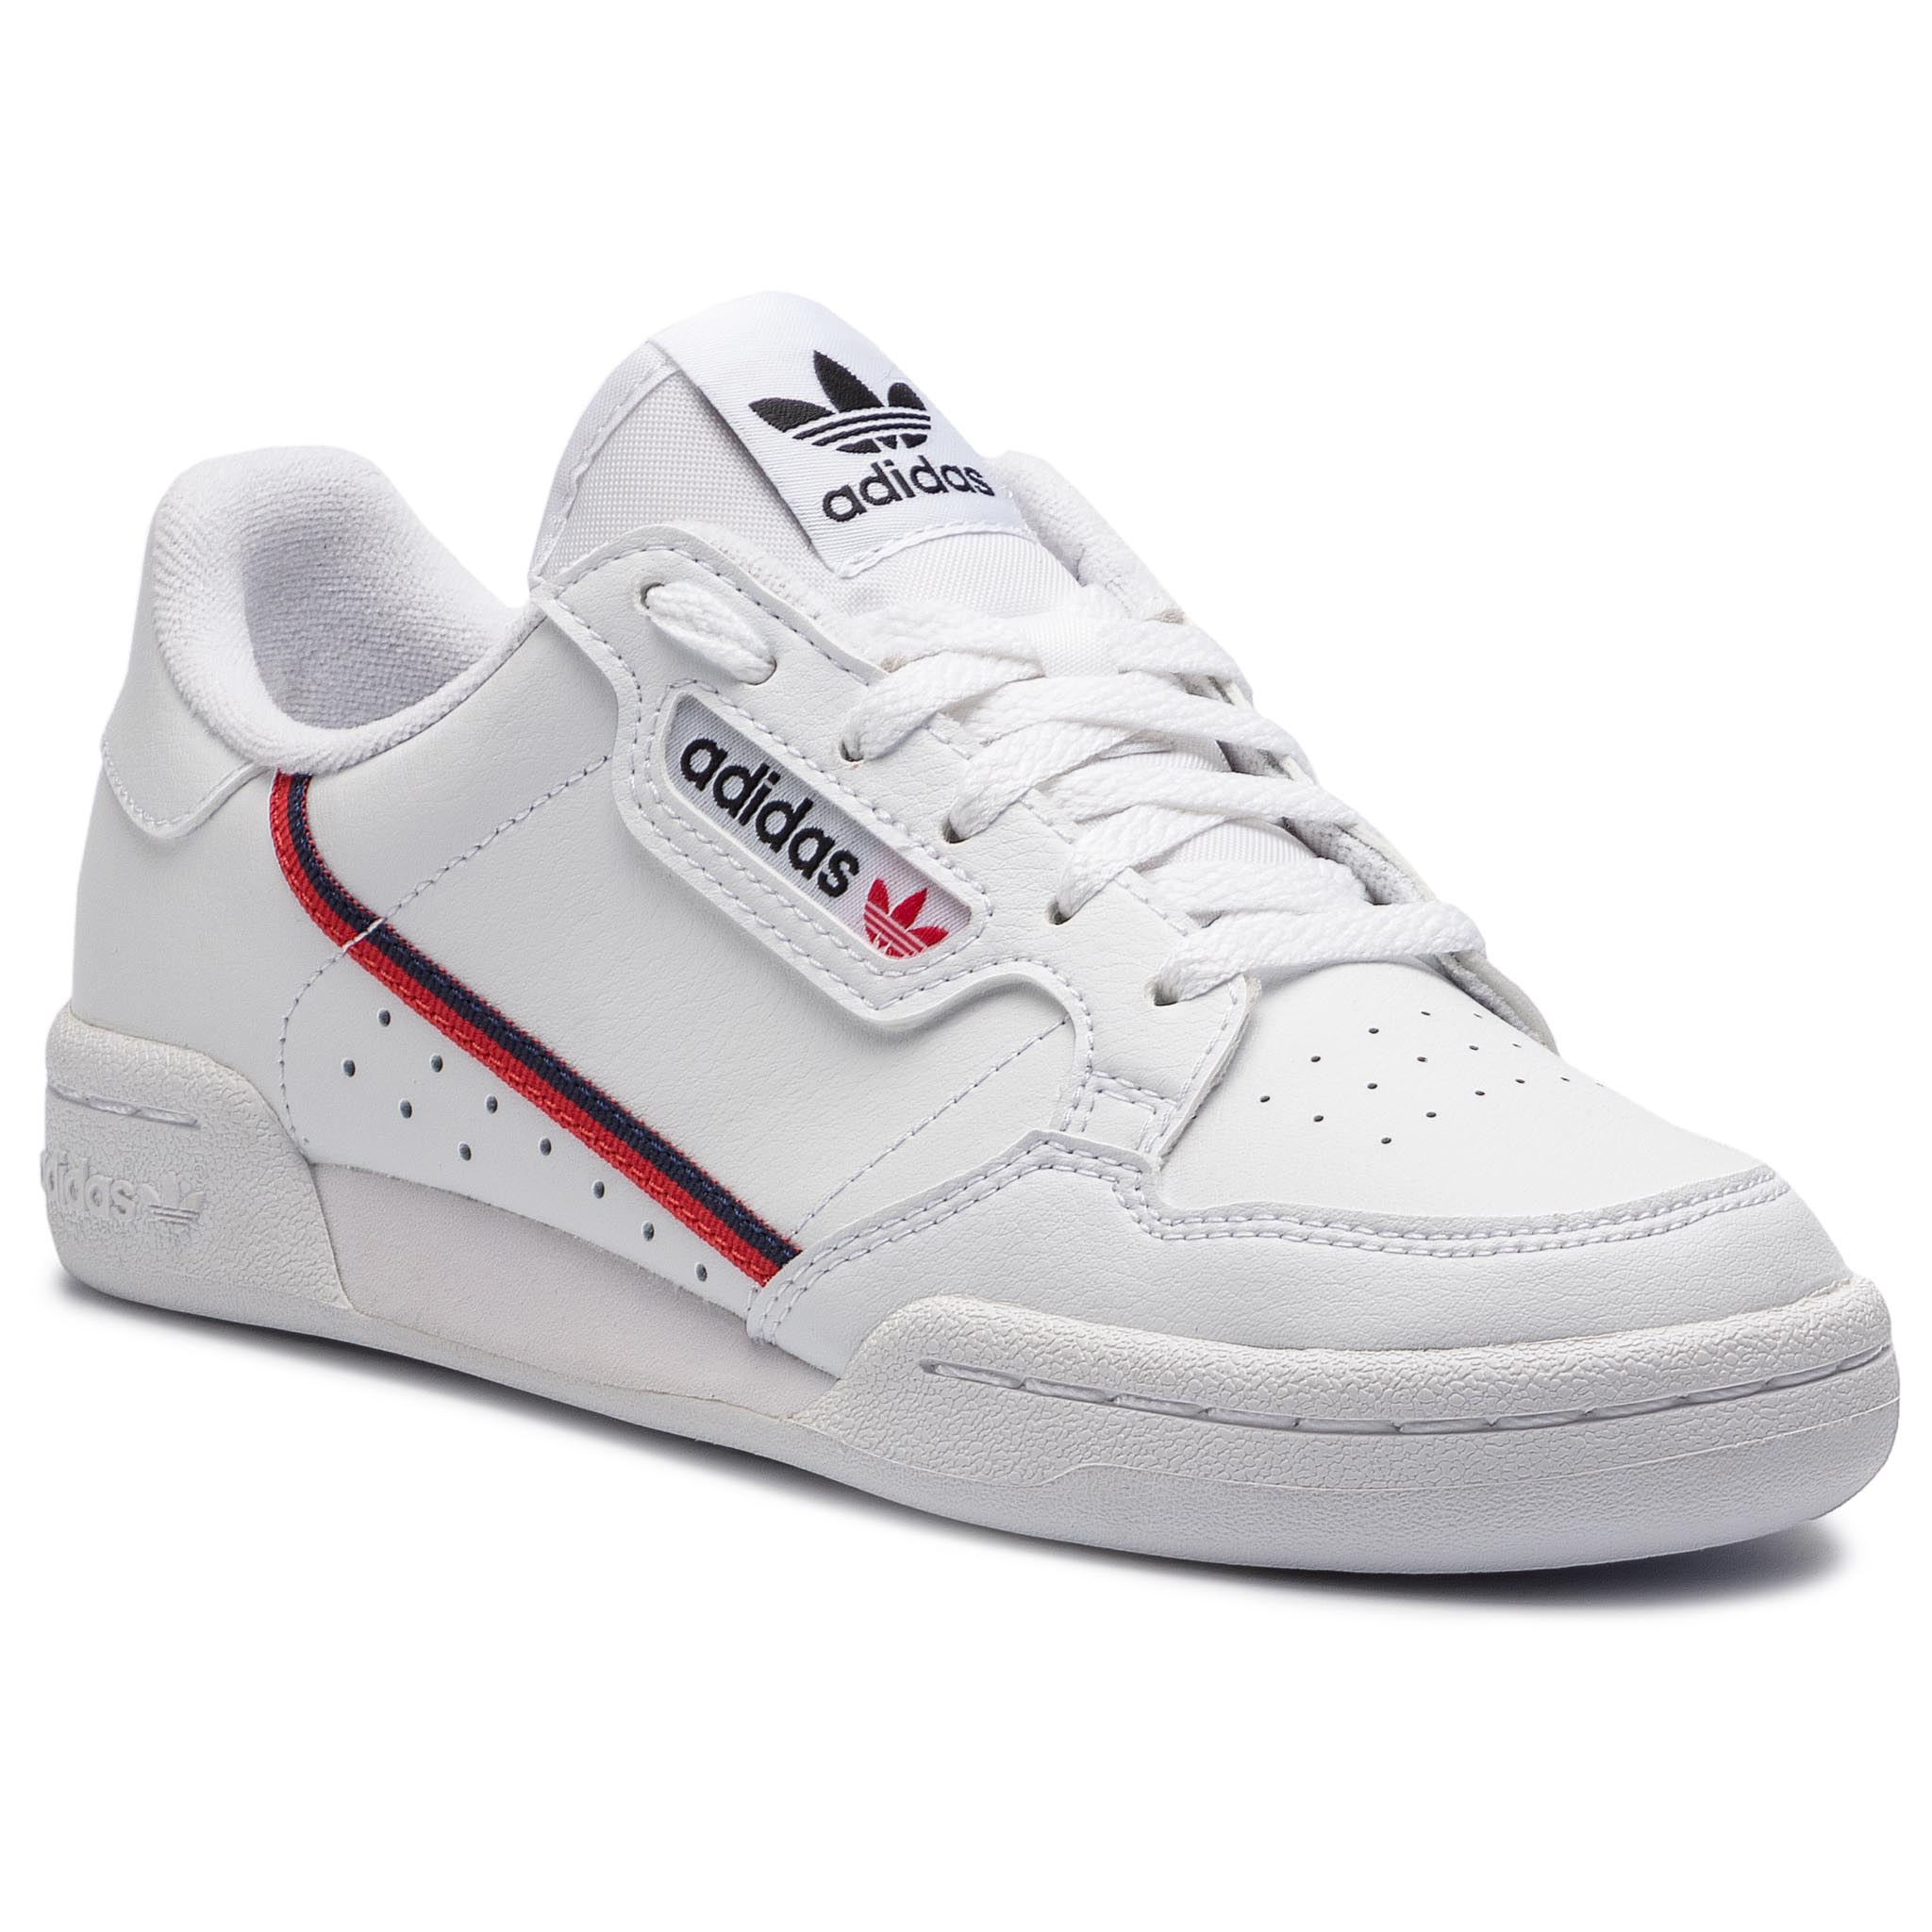 83574c08dc280 Topánky adidas - Continental 80 J F99787 Ftwht/Scarle/Conavy - Glami.sk